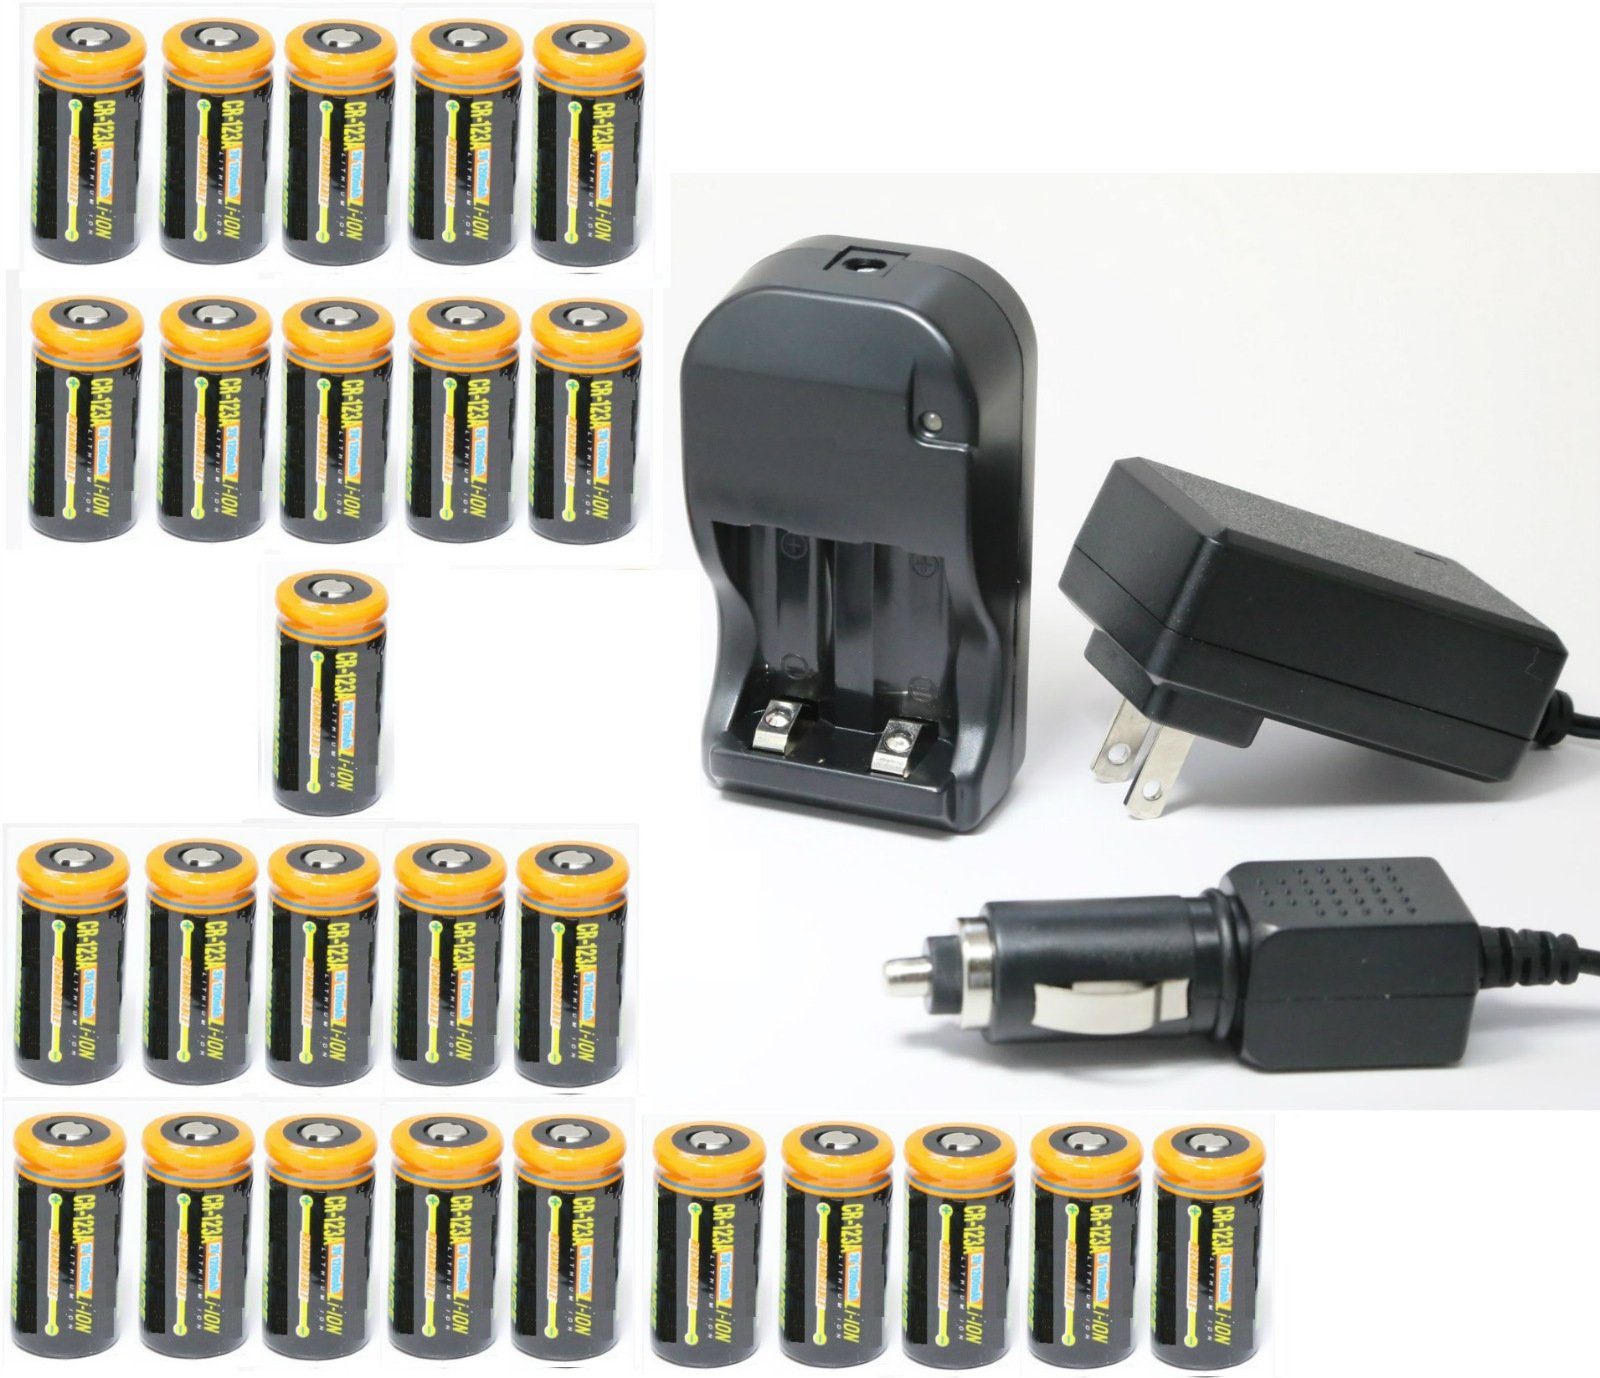 Ultimate Arms Gear 26pc CR123A 3V 1200 mAh Lithium Rechargeable Batteries Battery Charger Kit Universal 110/220V Rapid Wall Outlet & 12V Car Lighter Plug Adapter by Ultimate Arms Gear